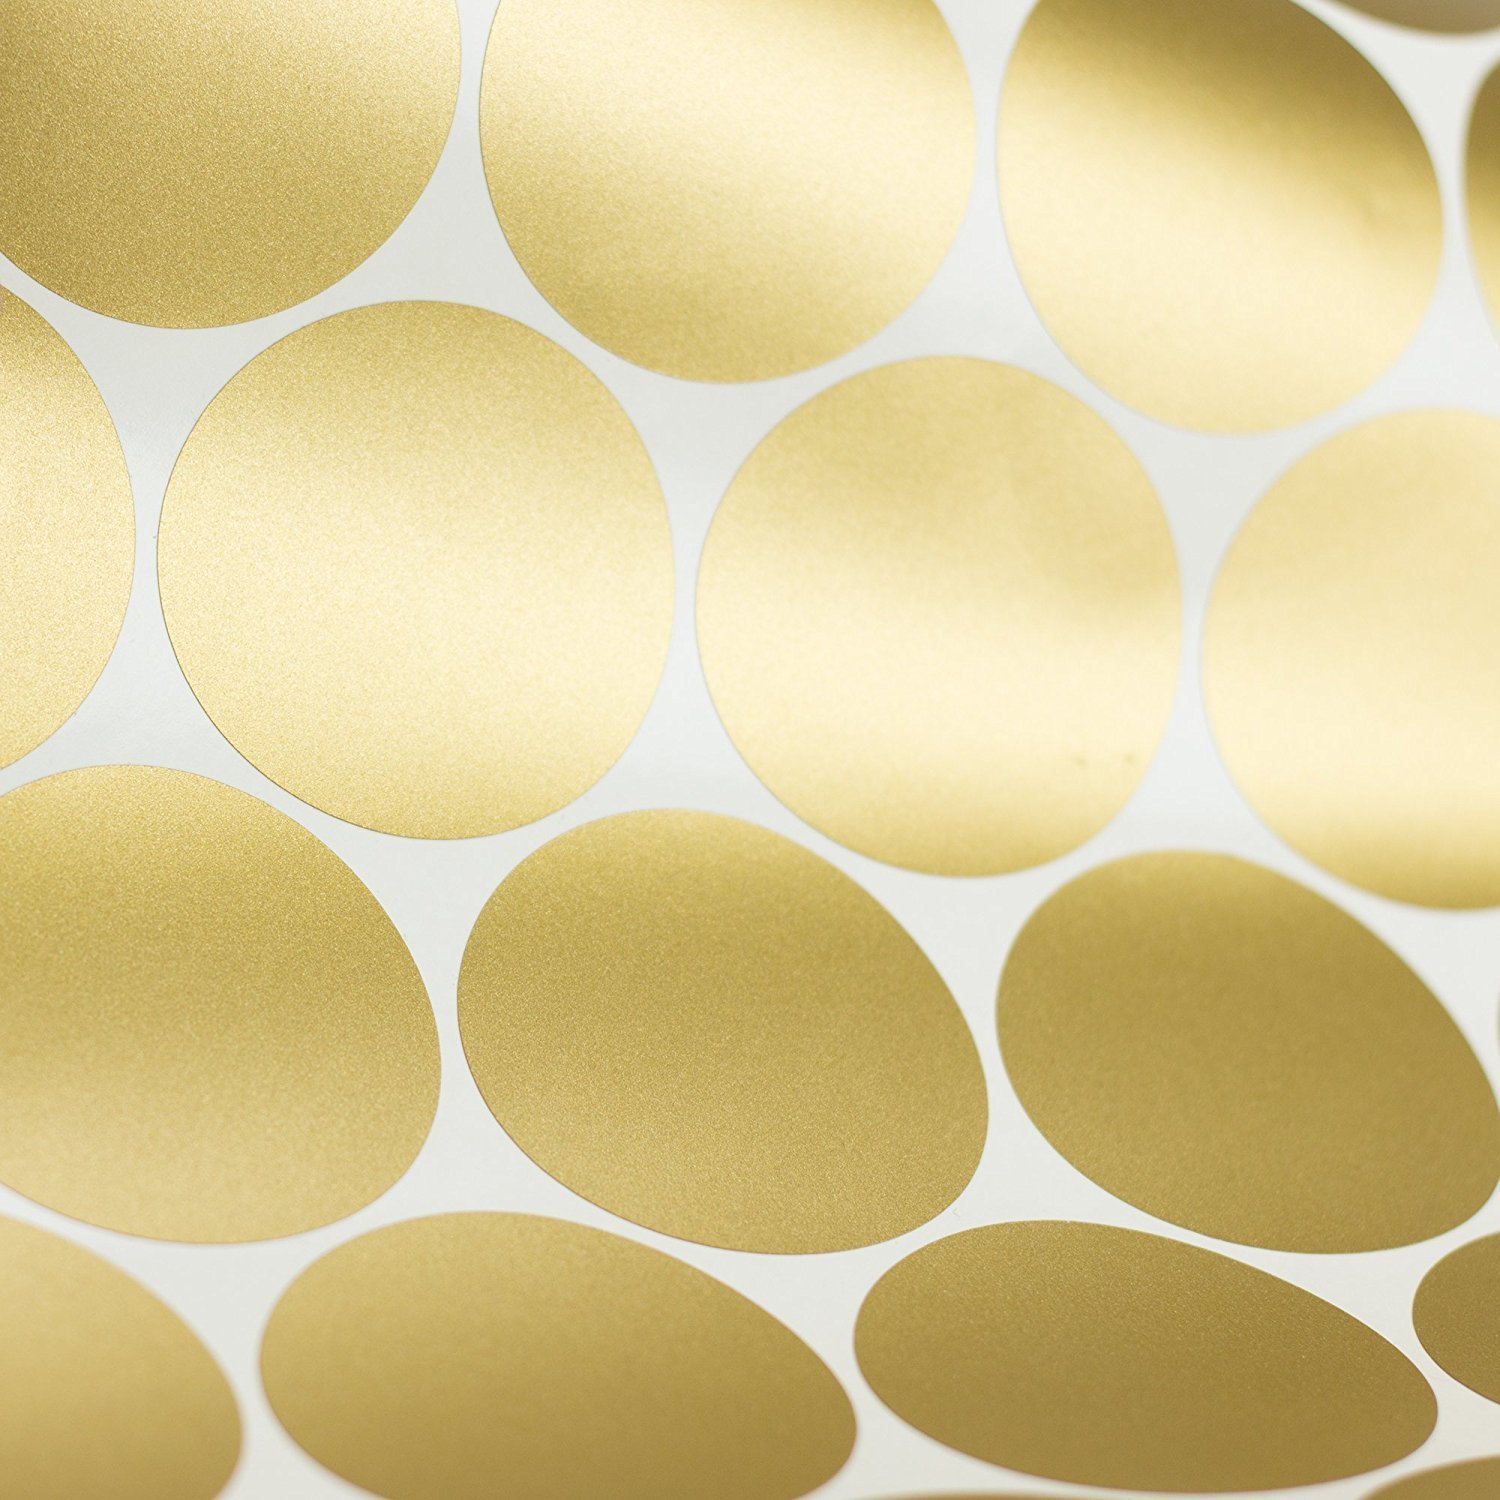 Gold Polka Dots, Removable Wall Sticker Home Decoration Vinyl Circle Wall Decal Vinyl Stickers Nursery Decor, 1.6 - 104 dots 1.6 - 104 dots Mofeng HK00DTMF